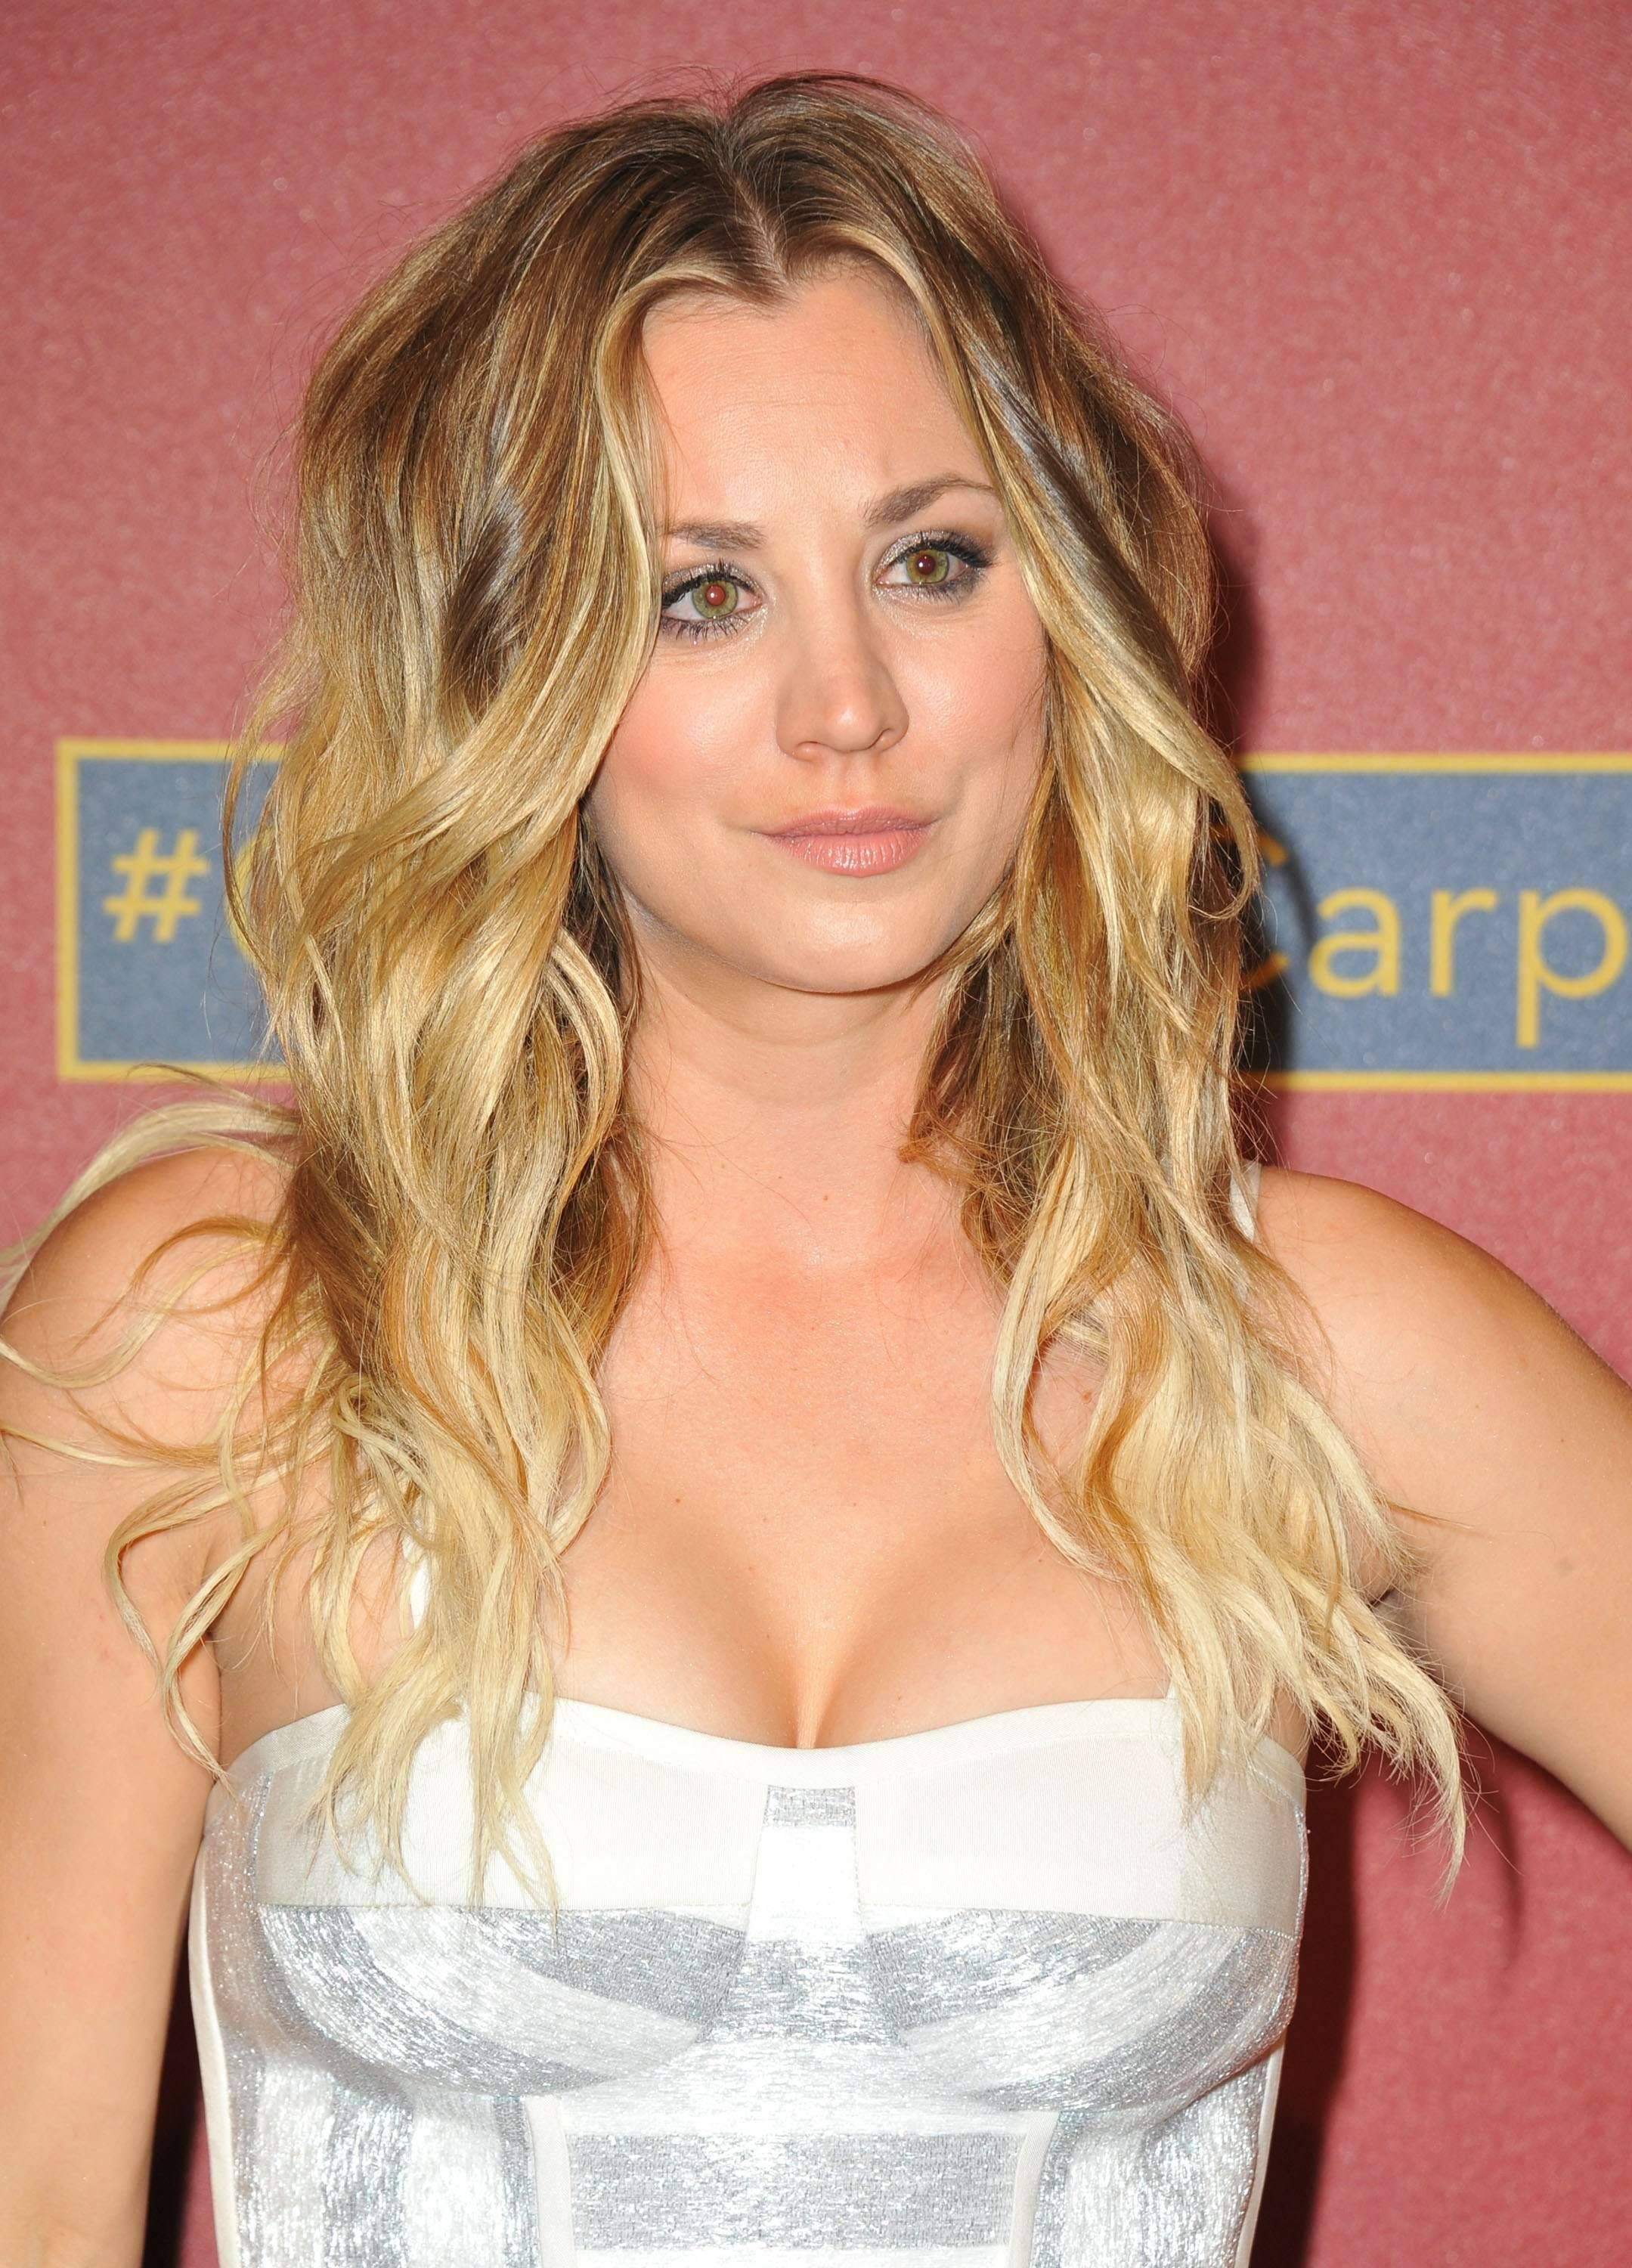 kaley cuoco told cosmopoliton that getting breast implants was the